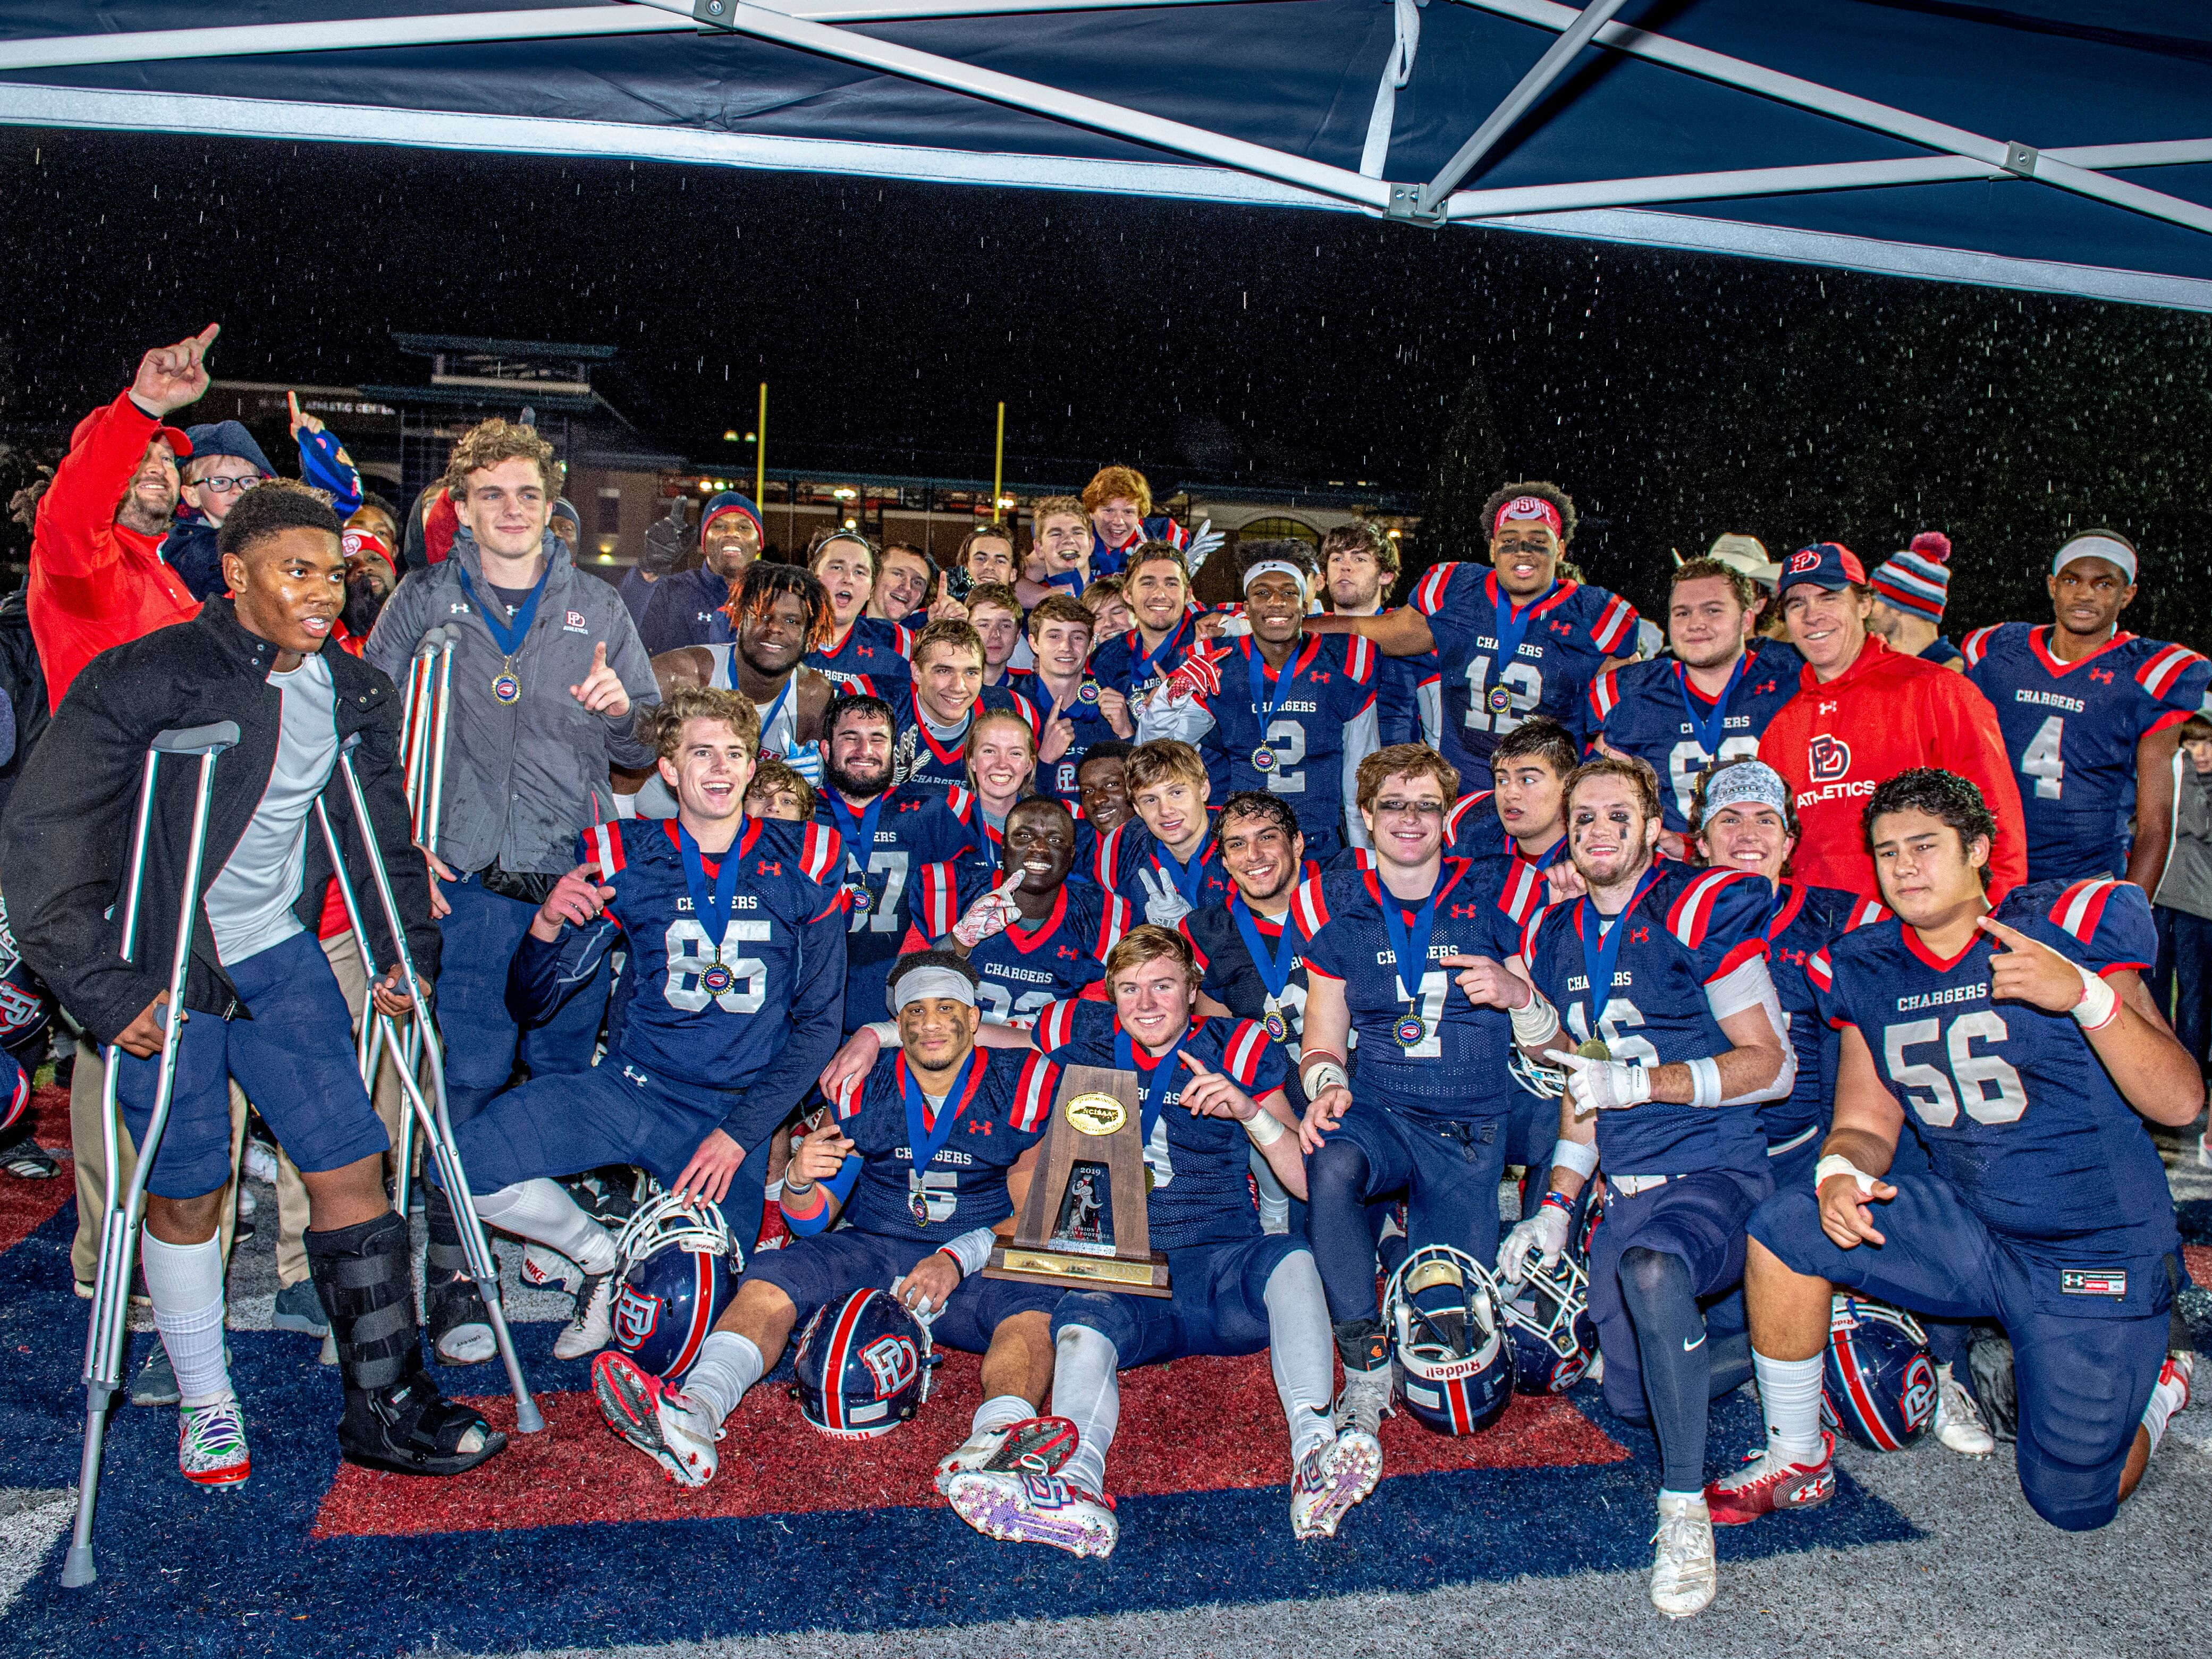 Providence Day sacks Metrolina Christian's upset hopes, wins NCISAA D2 state title